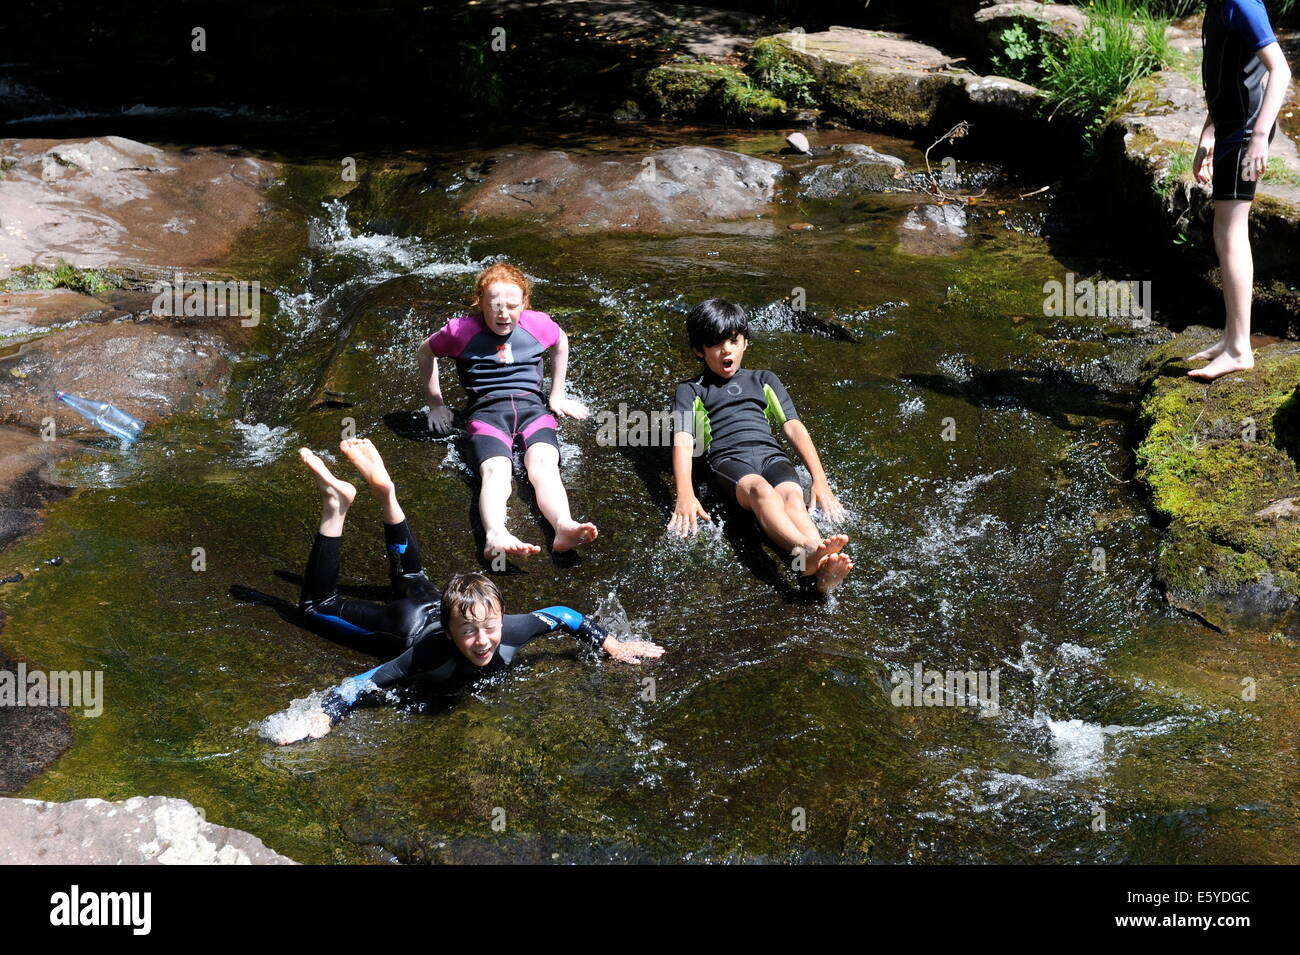 Young friends playing together at Caerfanell near Talybont reservoir, Powys, Wales - Stock Image